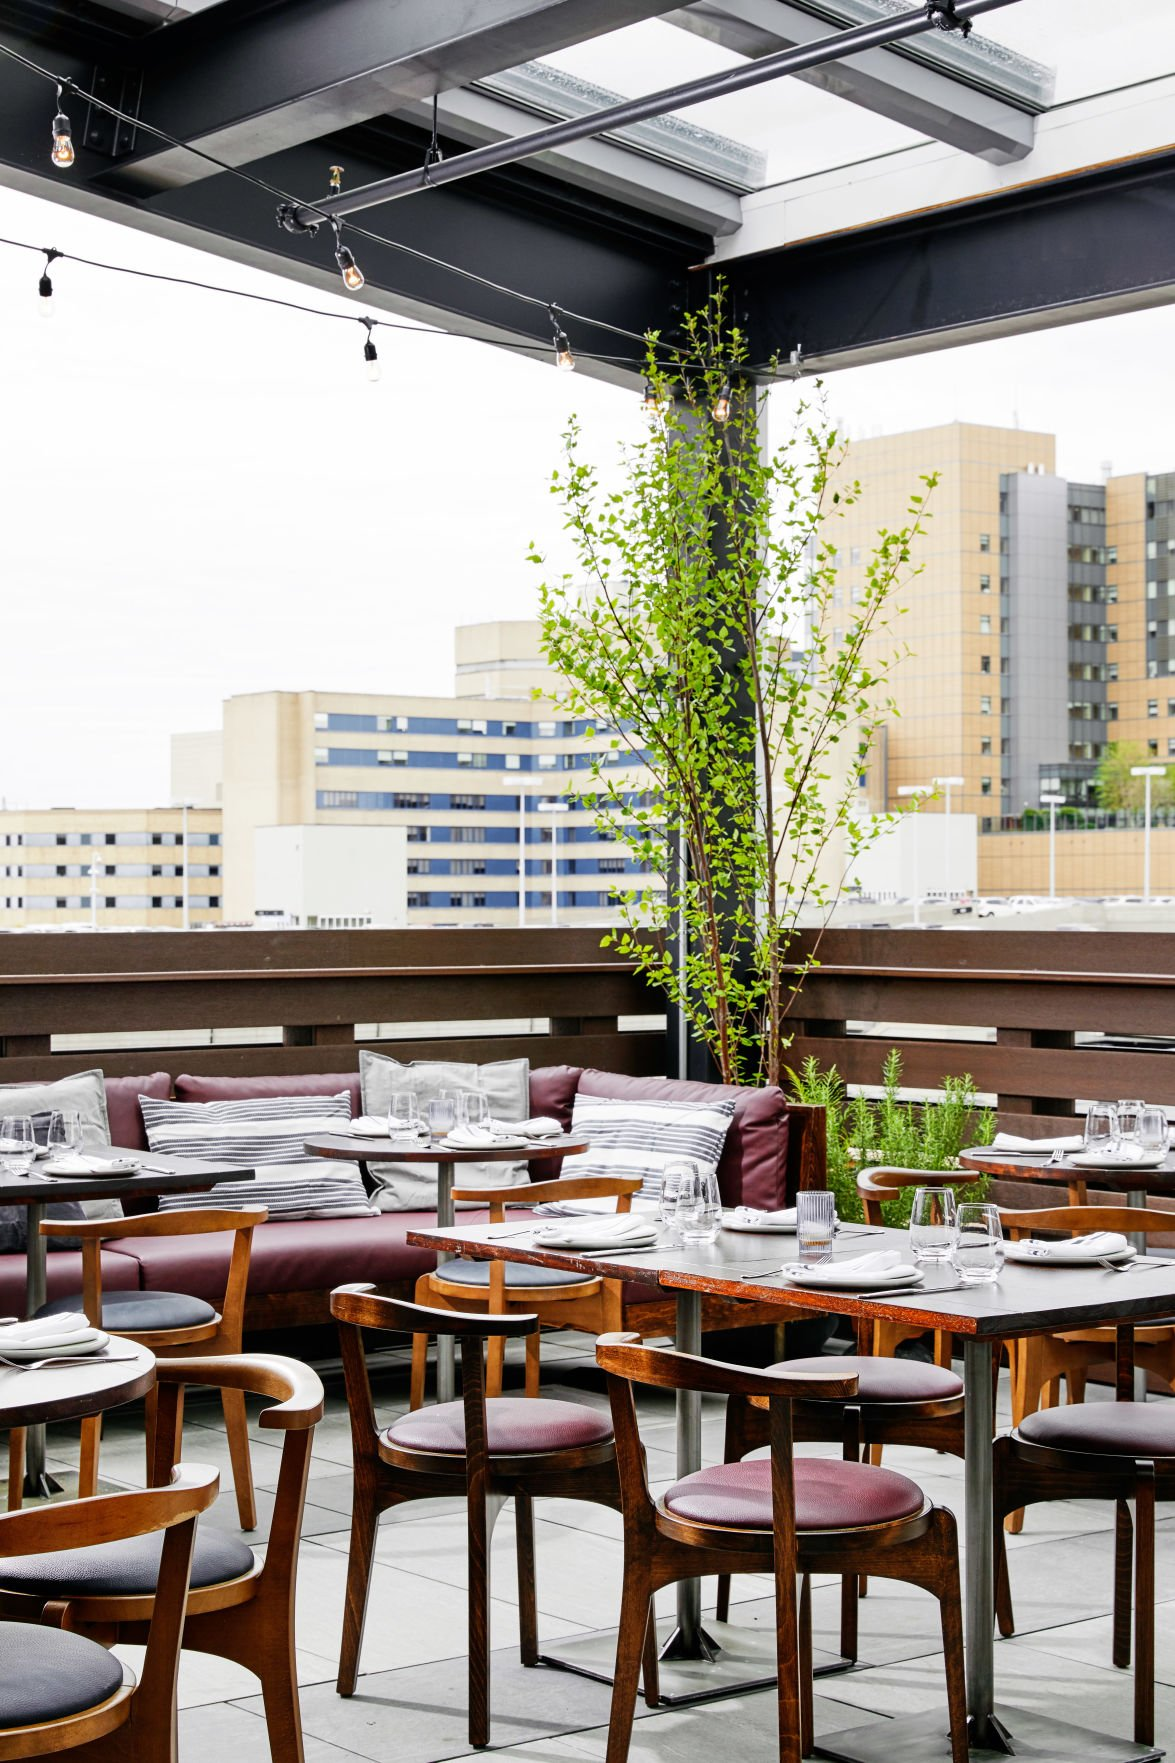 High George - Rooftop Bar and Restaurant - Grand Opening on Wednesday, June 26